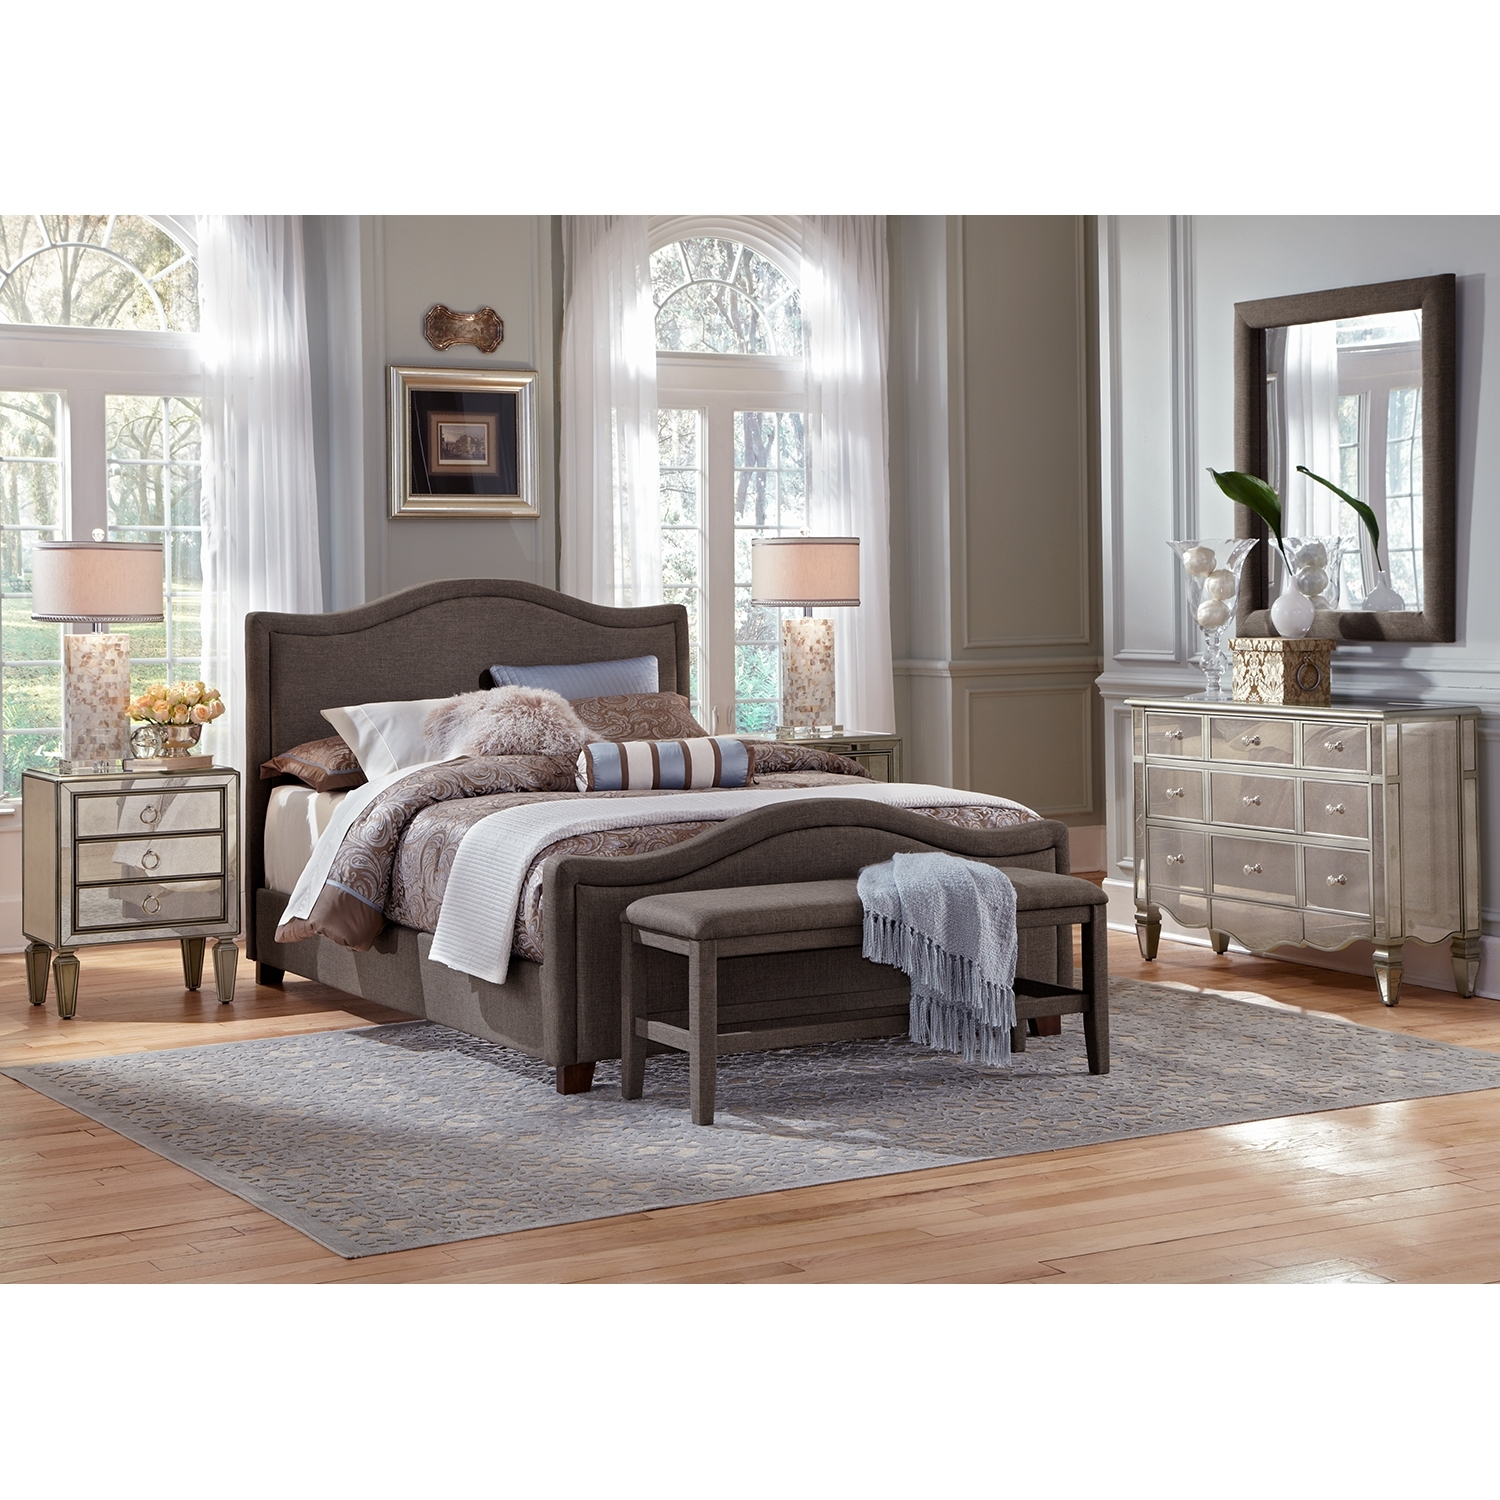 wood and mirrored bedroom furniture photo - 2